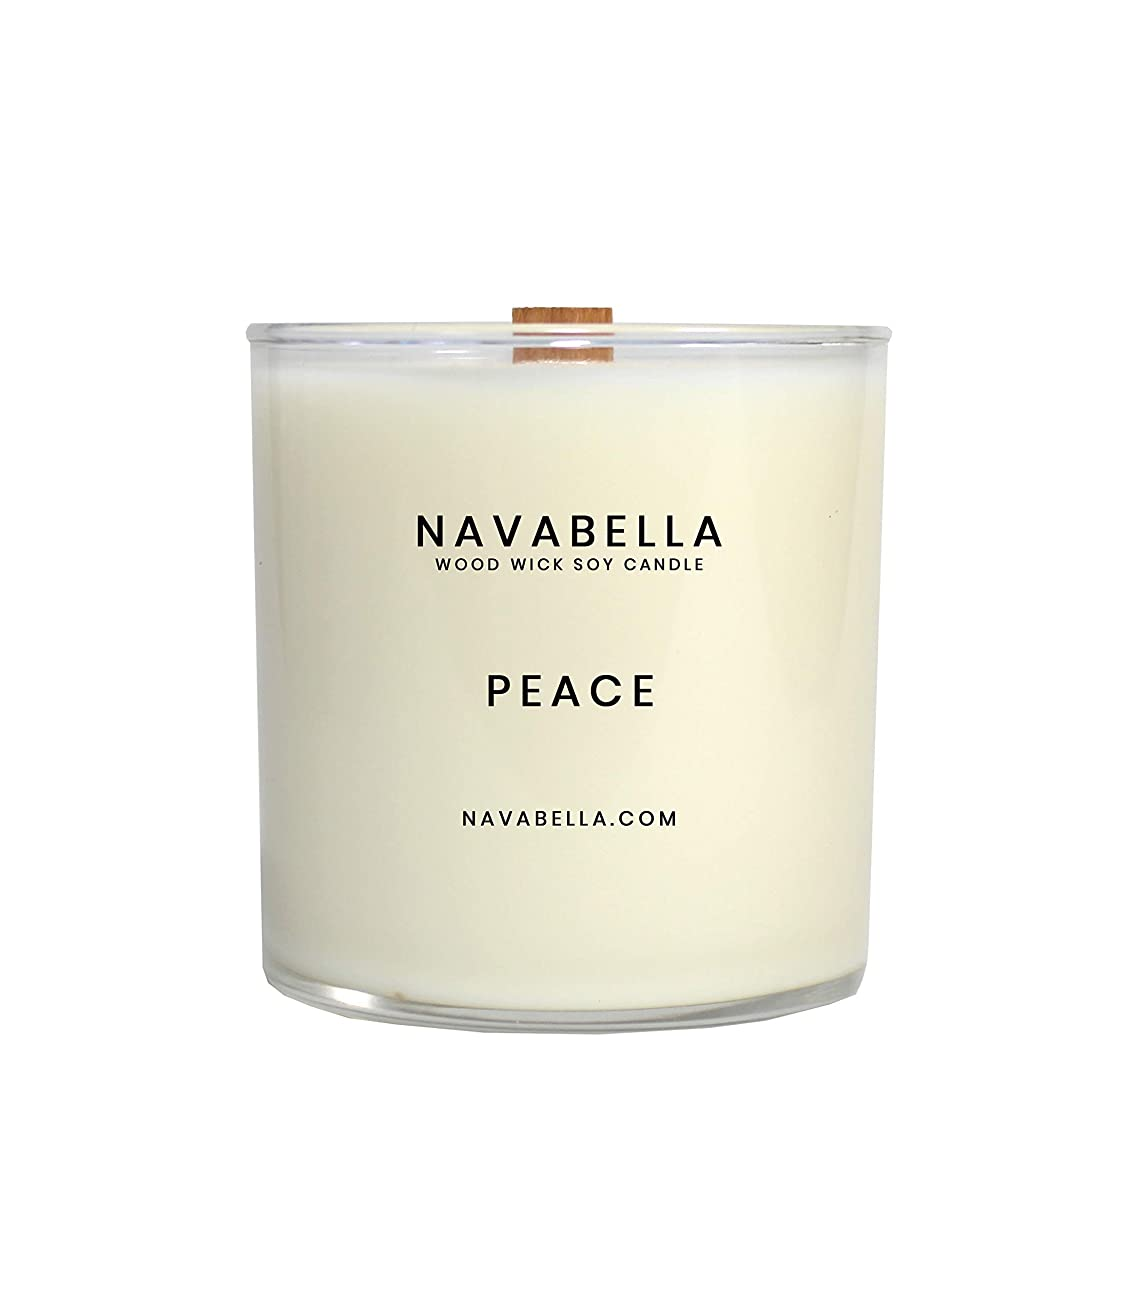 Highly Fragrant Scented Soy Candle, Strong Top to Bottom Burn, Peace Soy Candle, Handmade w/Black Tea, Vetiver + Sandalwood Oils to Balance Emotions + Calm Your Spirit - Double Wood Wicks, 50 Hr. Burn